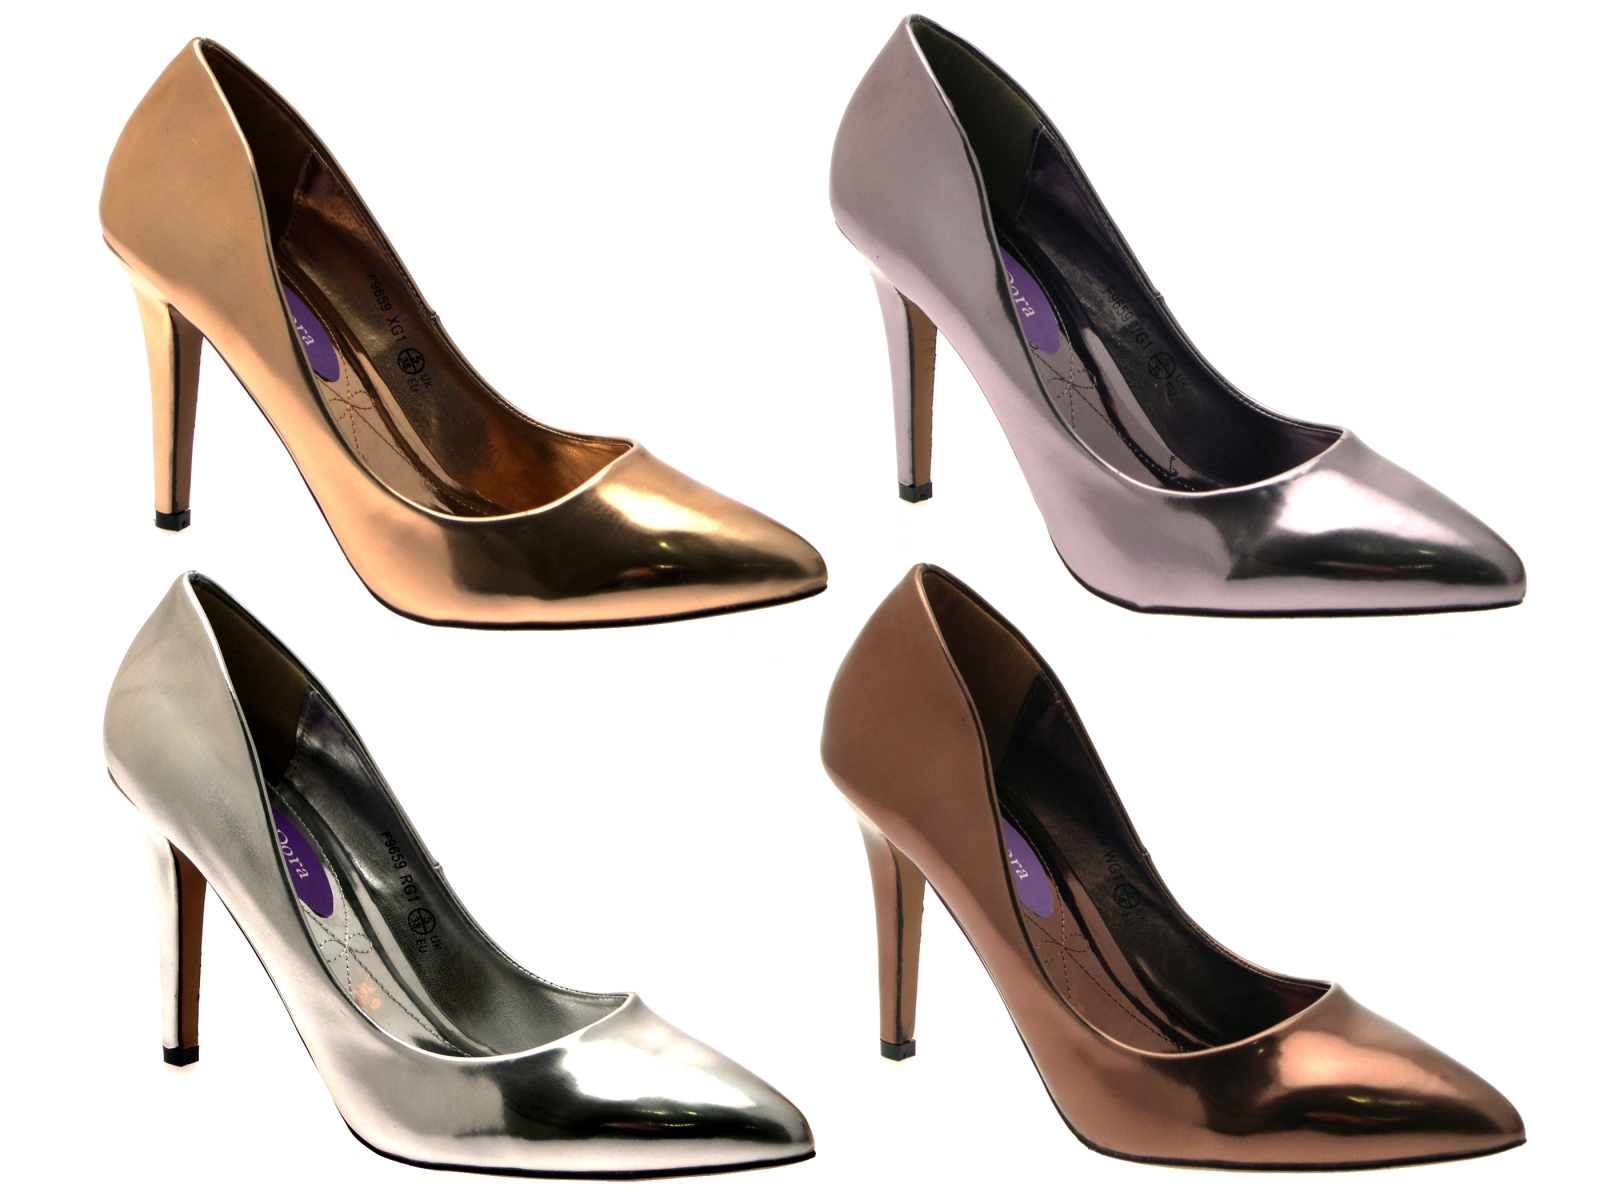 Womens-Metallic-Pointed-Toe-Court-Stiletto-High-Heels-Ladies-Work-Office-Shoes thumbnail 23